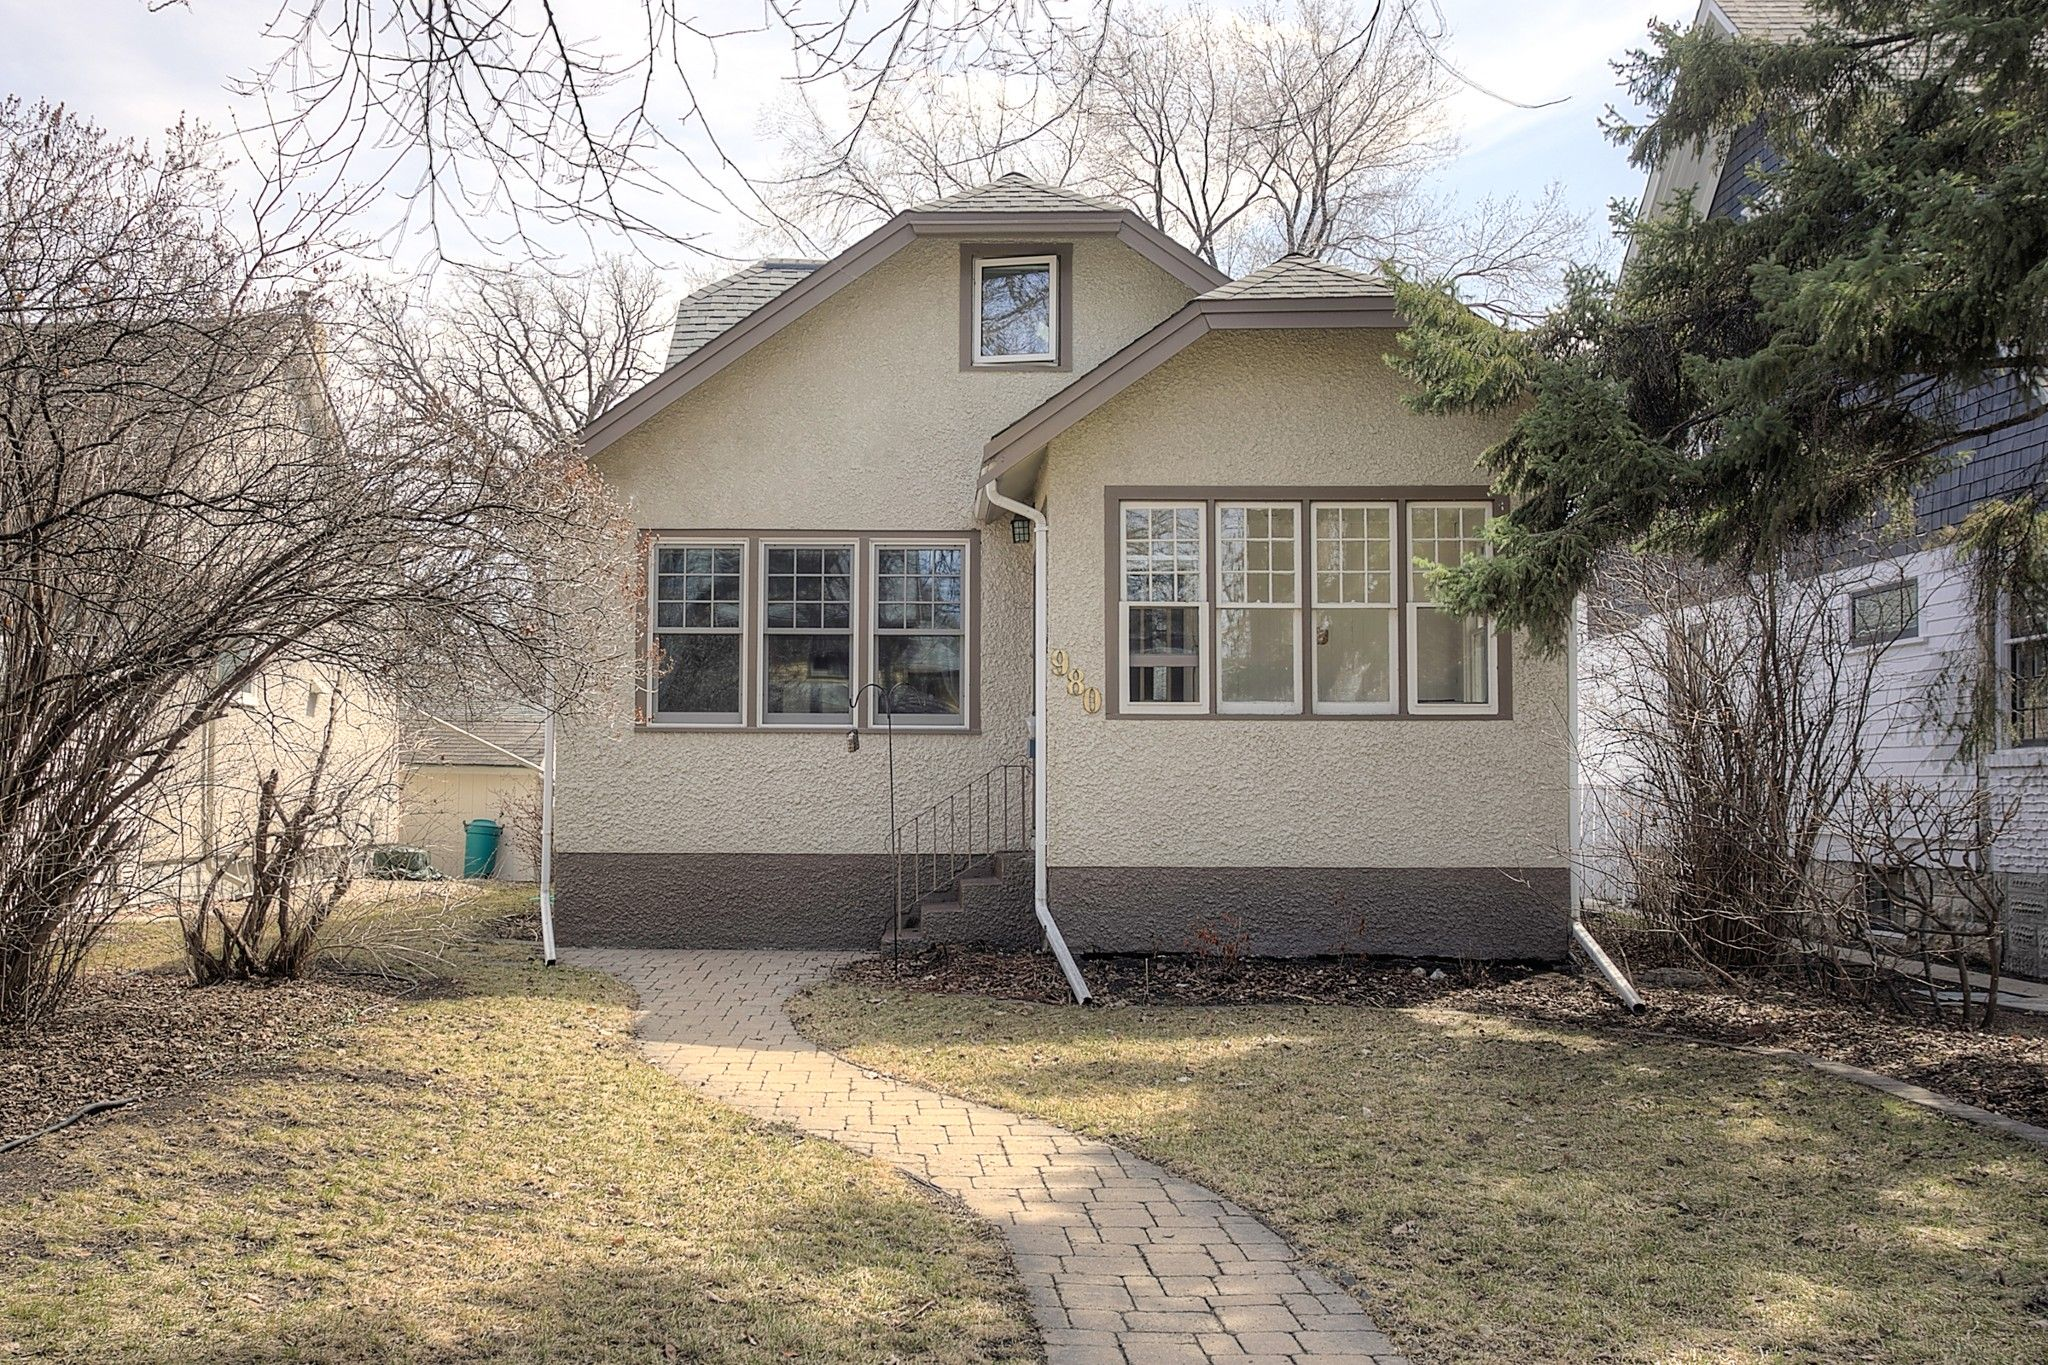 Main Photo: 980 McMillan Avenue in Winnipeg: Crescentwood Single Family Detached for sale (1Bw)  : MLS®# 202008869